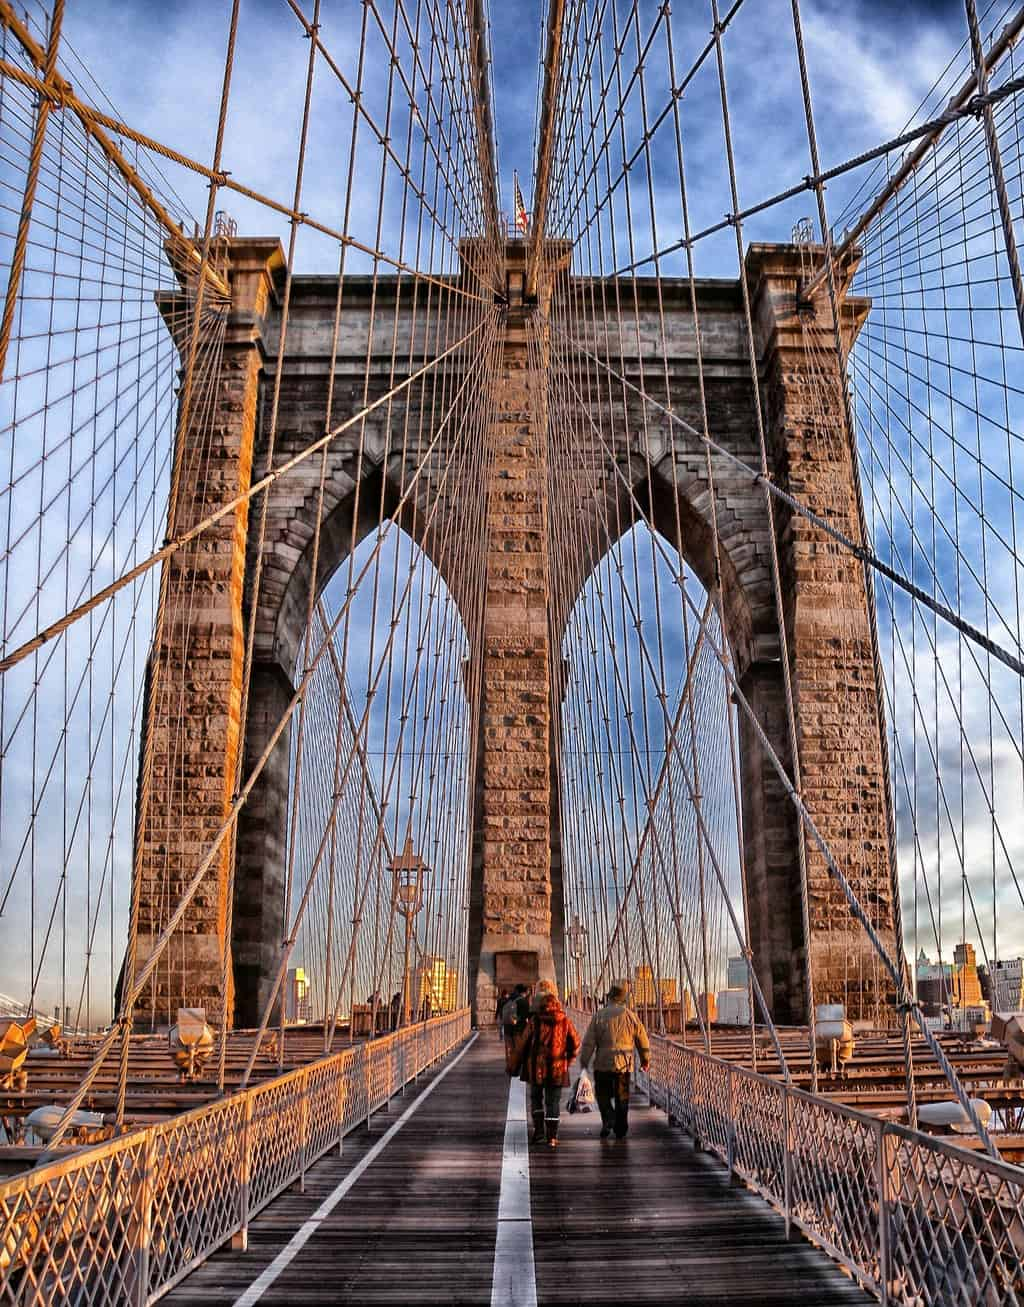 A close-up view of the Brooklyn Bridge.